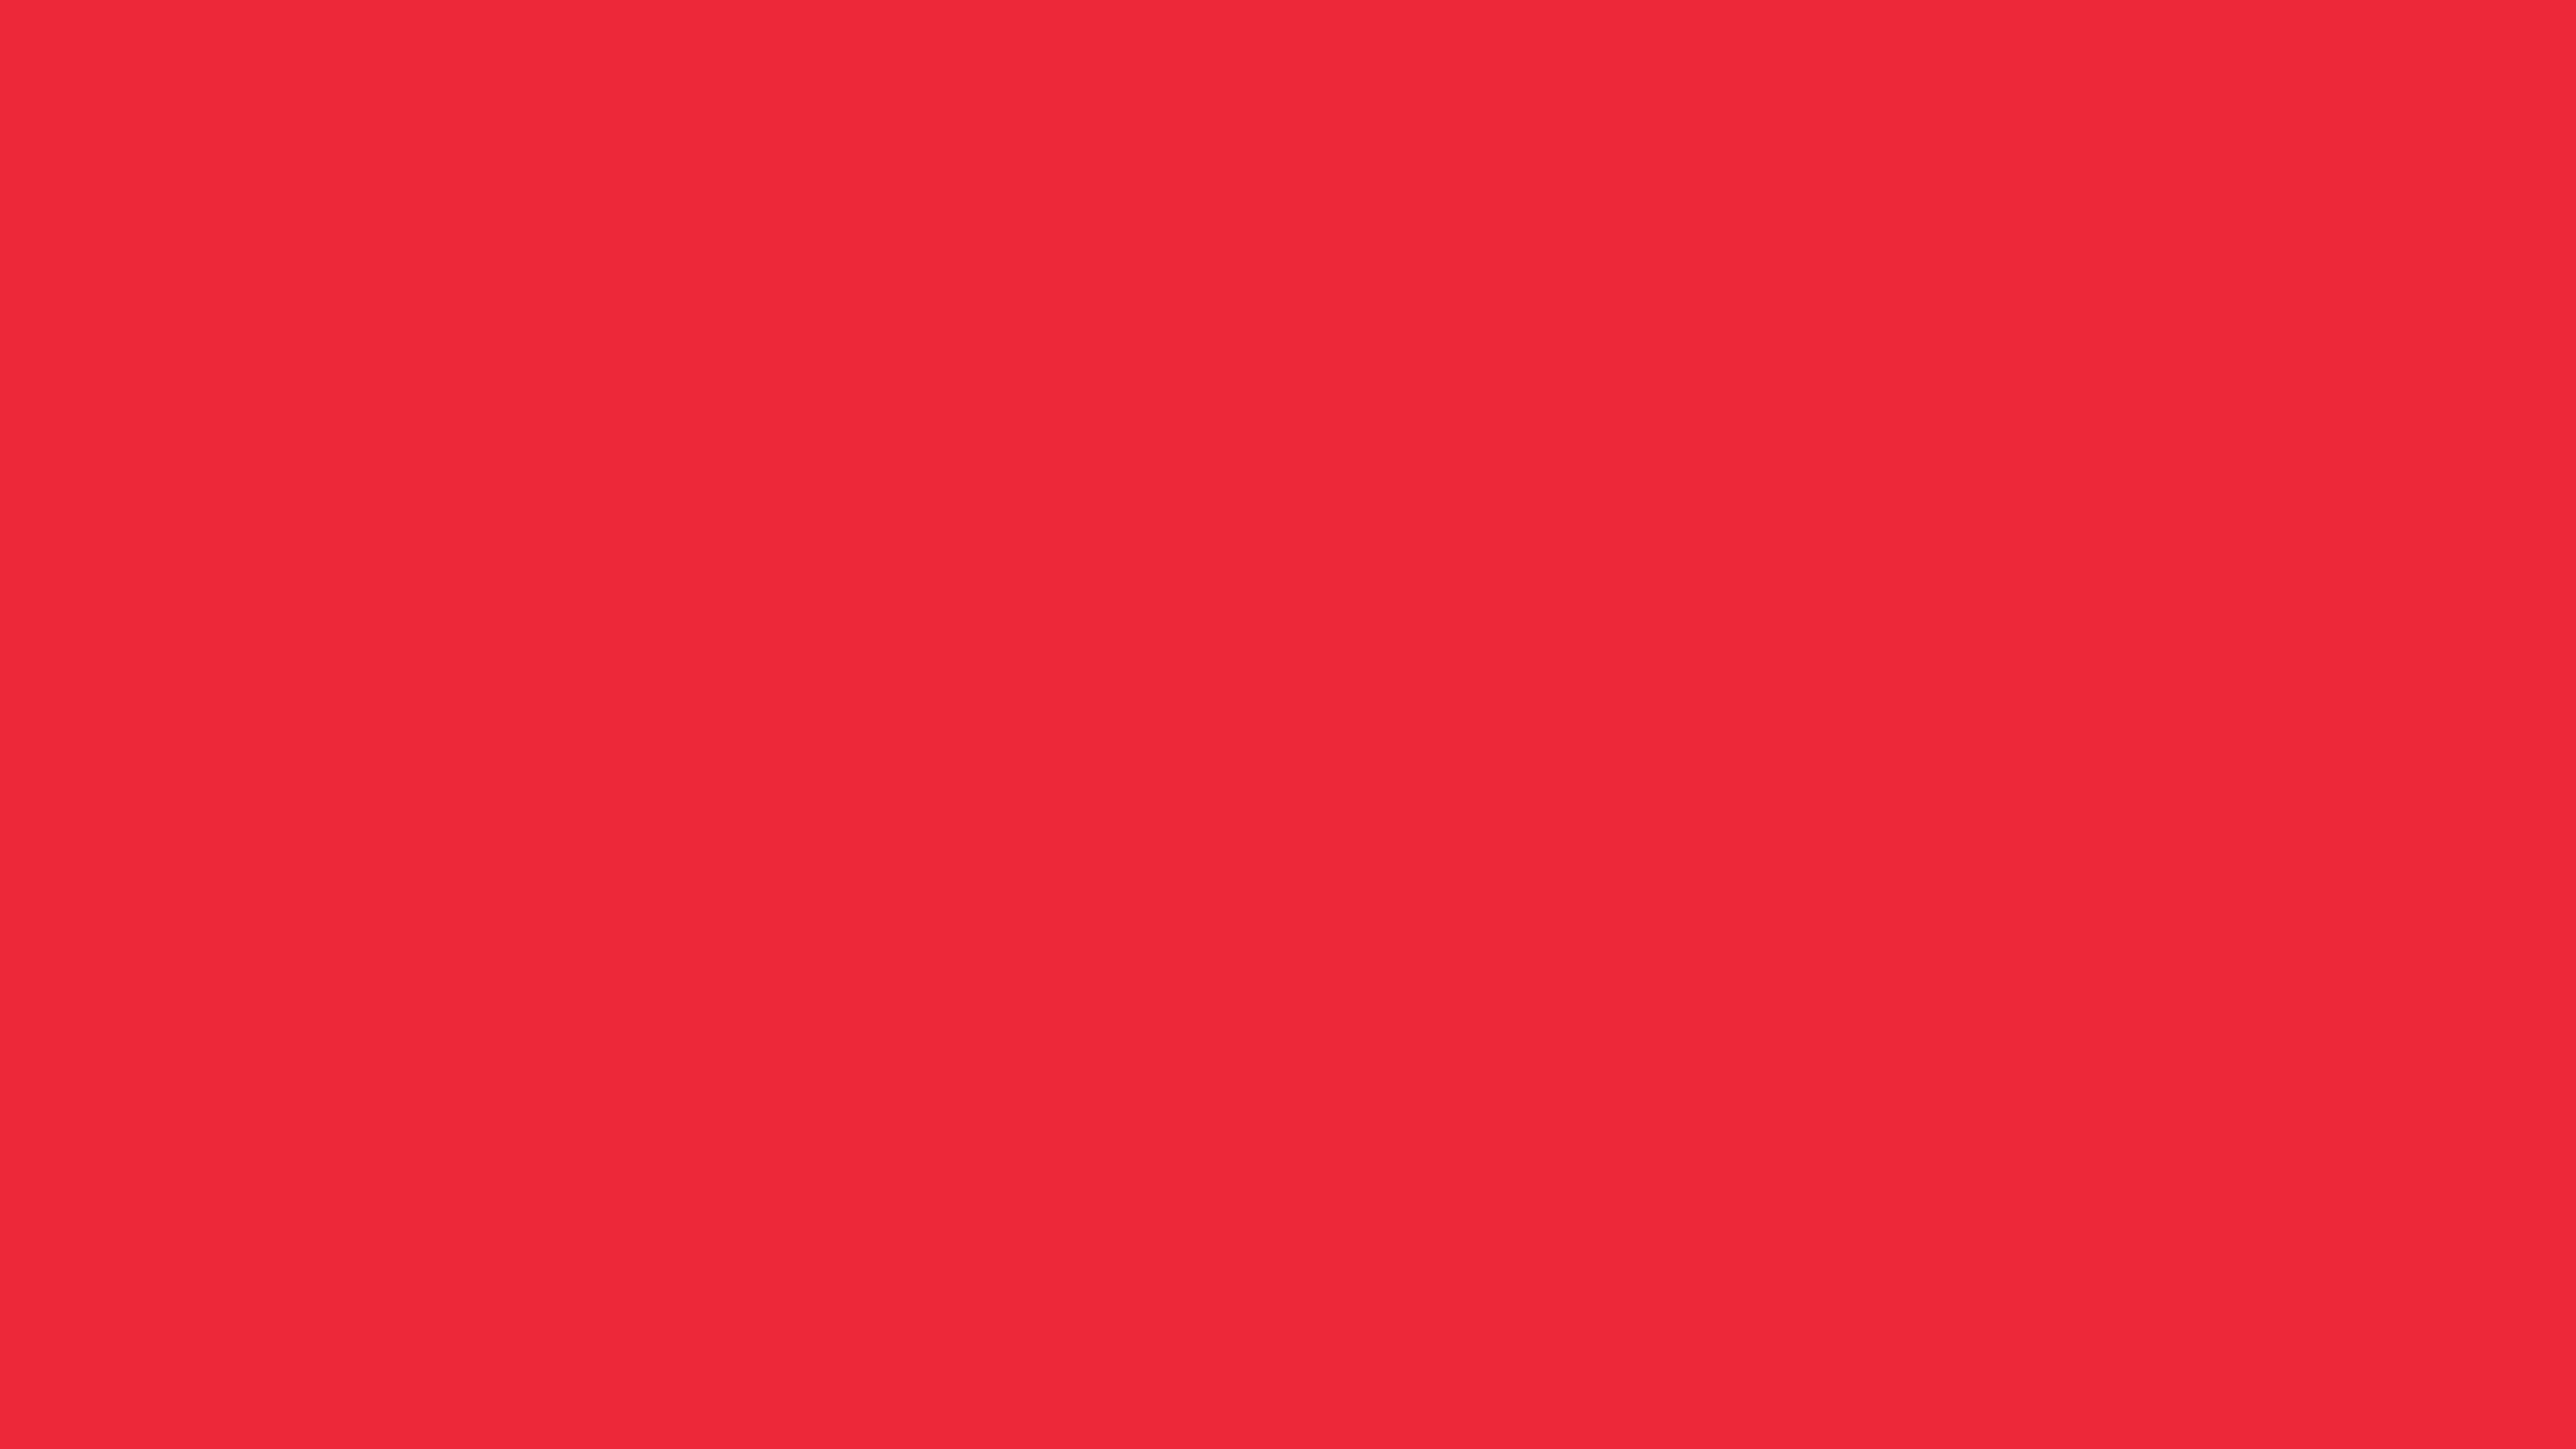 4096x2304 Red Pantone Solid Color Background